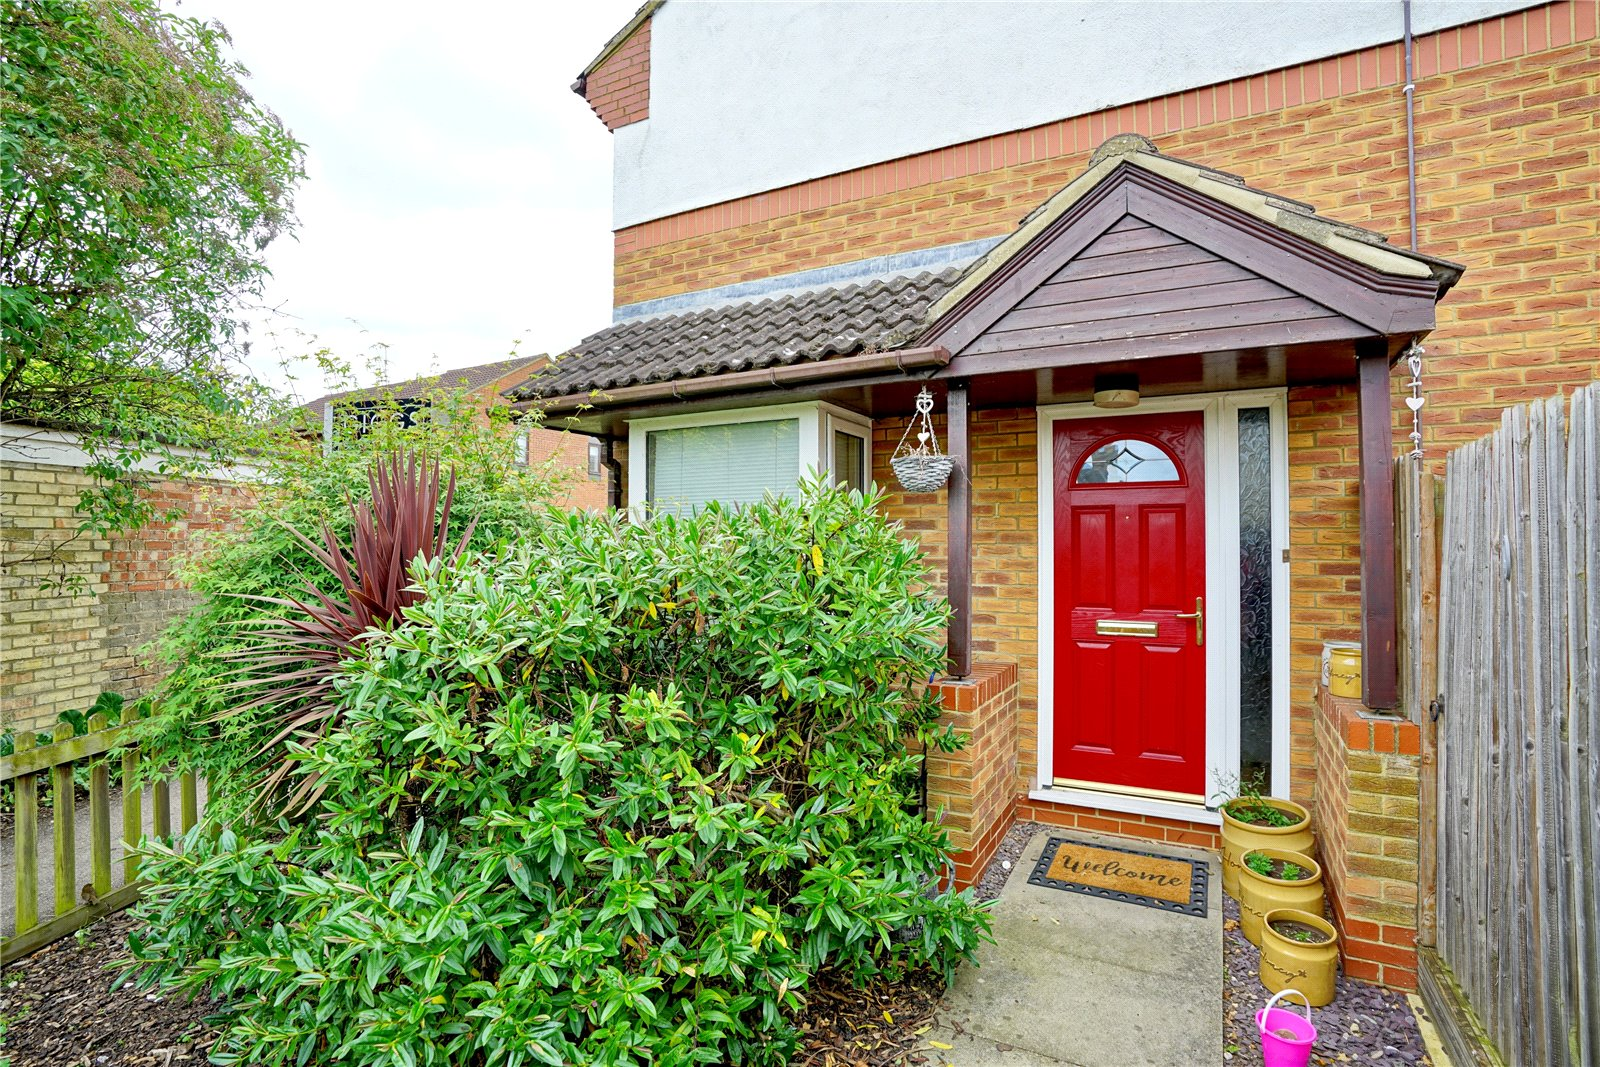 3 bed house for sale in Eayre Court, St Neots - Property Image 1